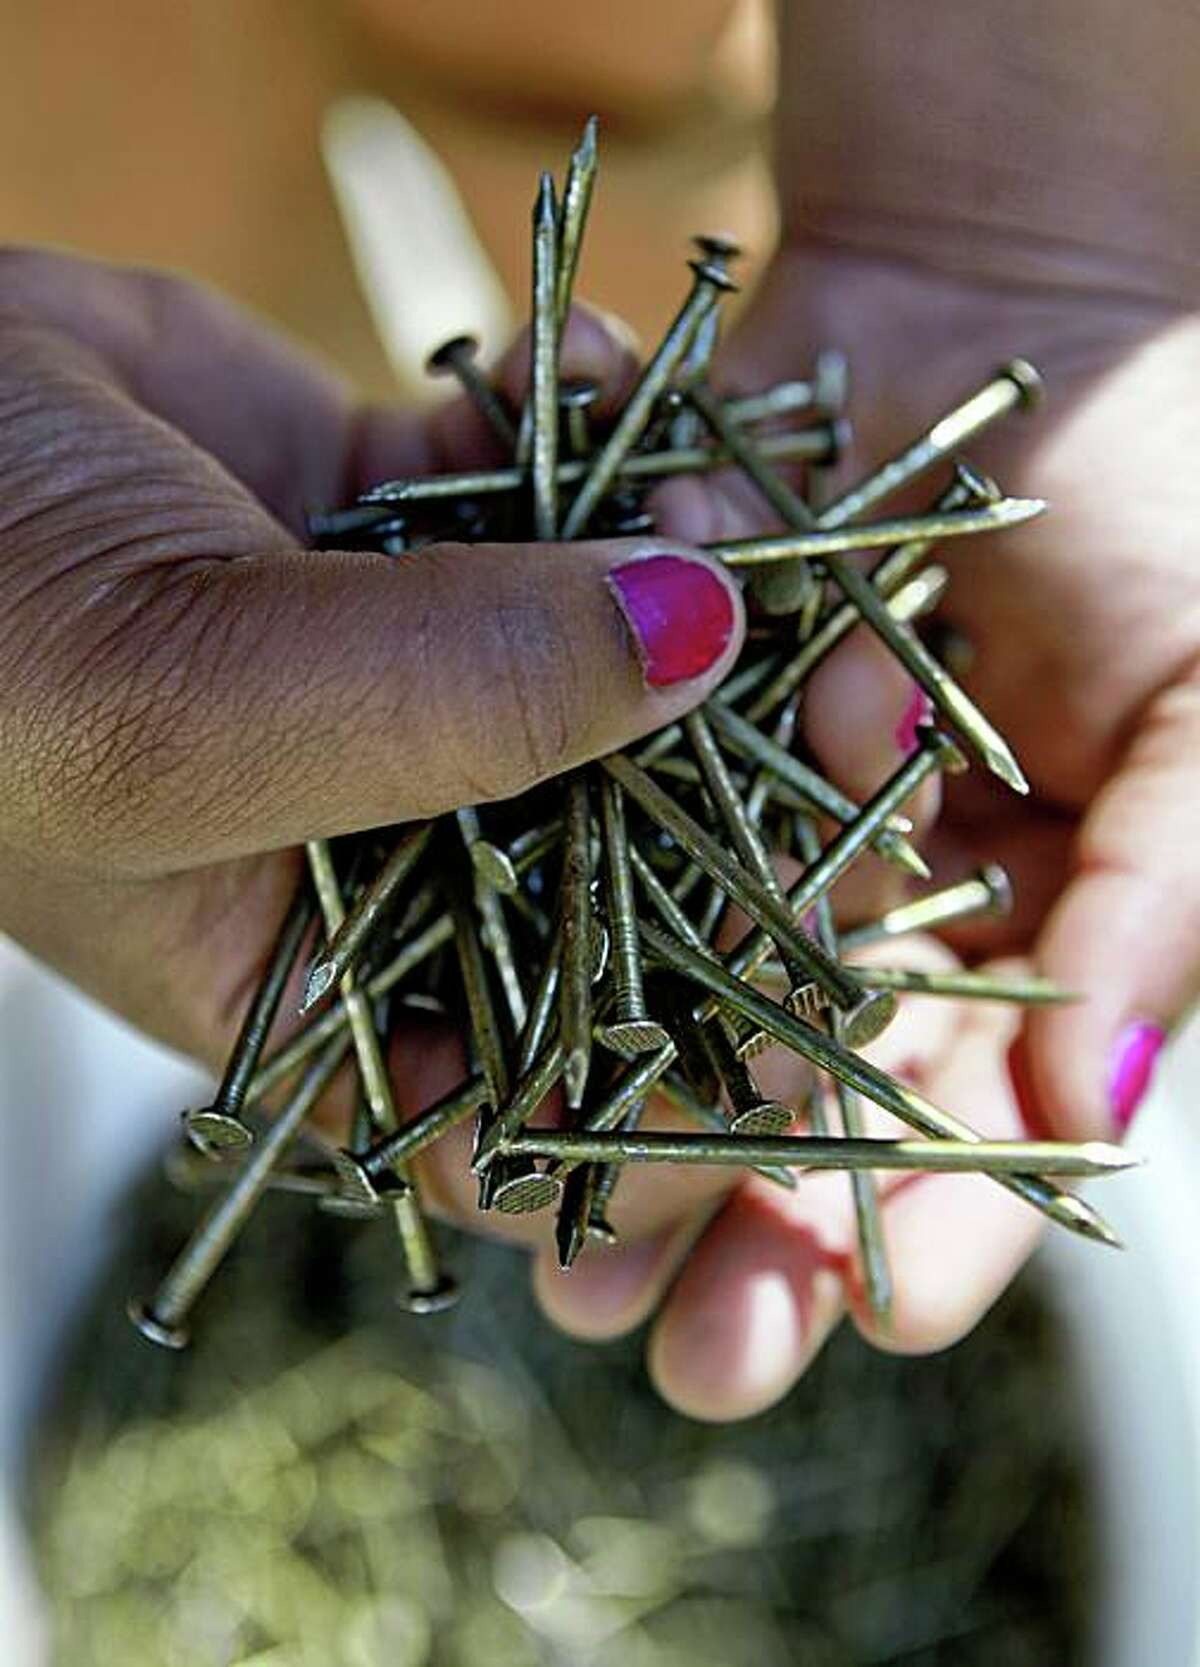 Deanna Kelly, grabs a handful of nails during during a basic carpentry class at John Muir Charter School which works with at-risk youth providing educational and vocational programs, on Treasure Island in San Francisco, Calif. on Thursday October 22, 2009.